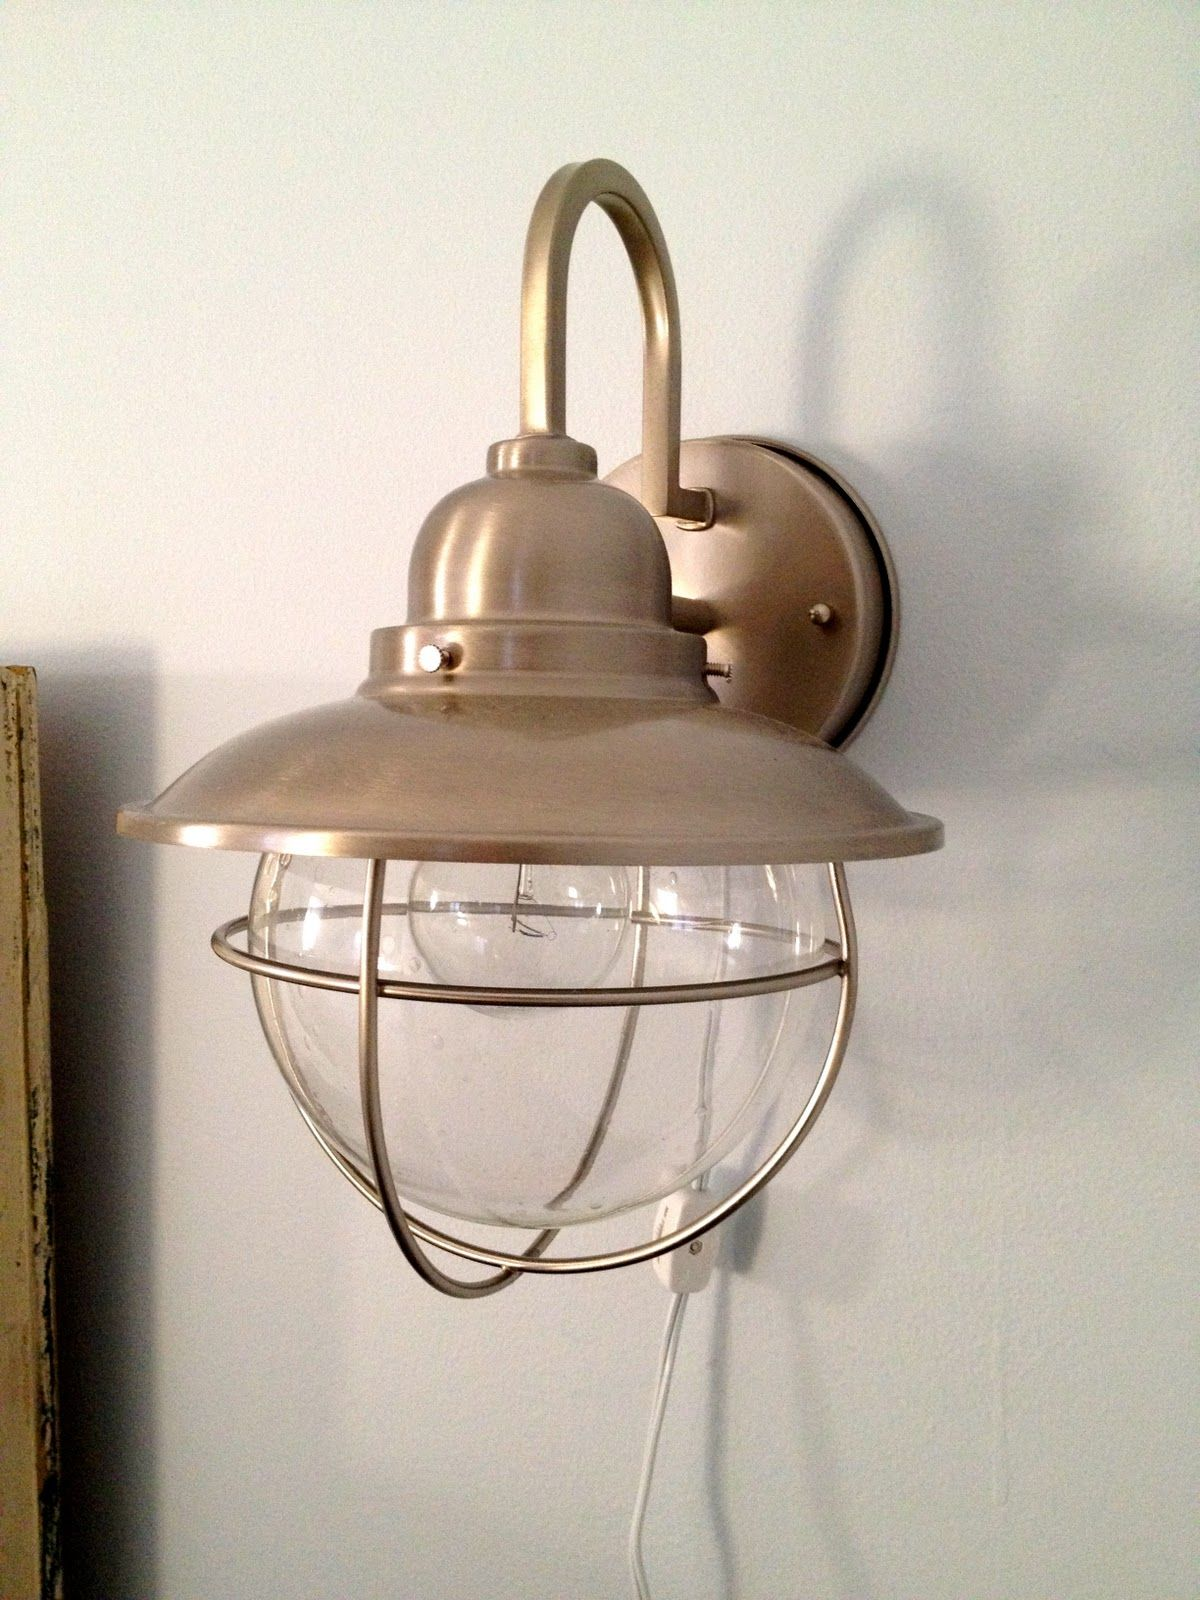 Wall Sconces No Wiring : How to make a hard-wire wall light into a plug in wall sconce.....I might be able to do this ...